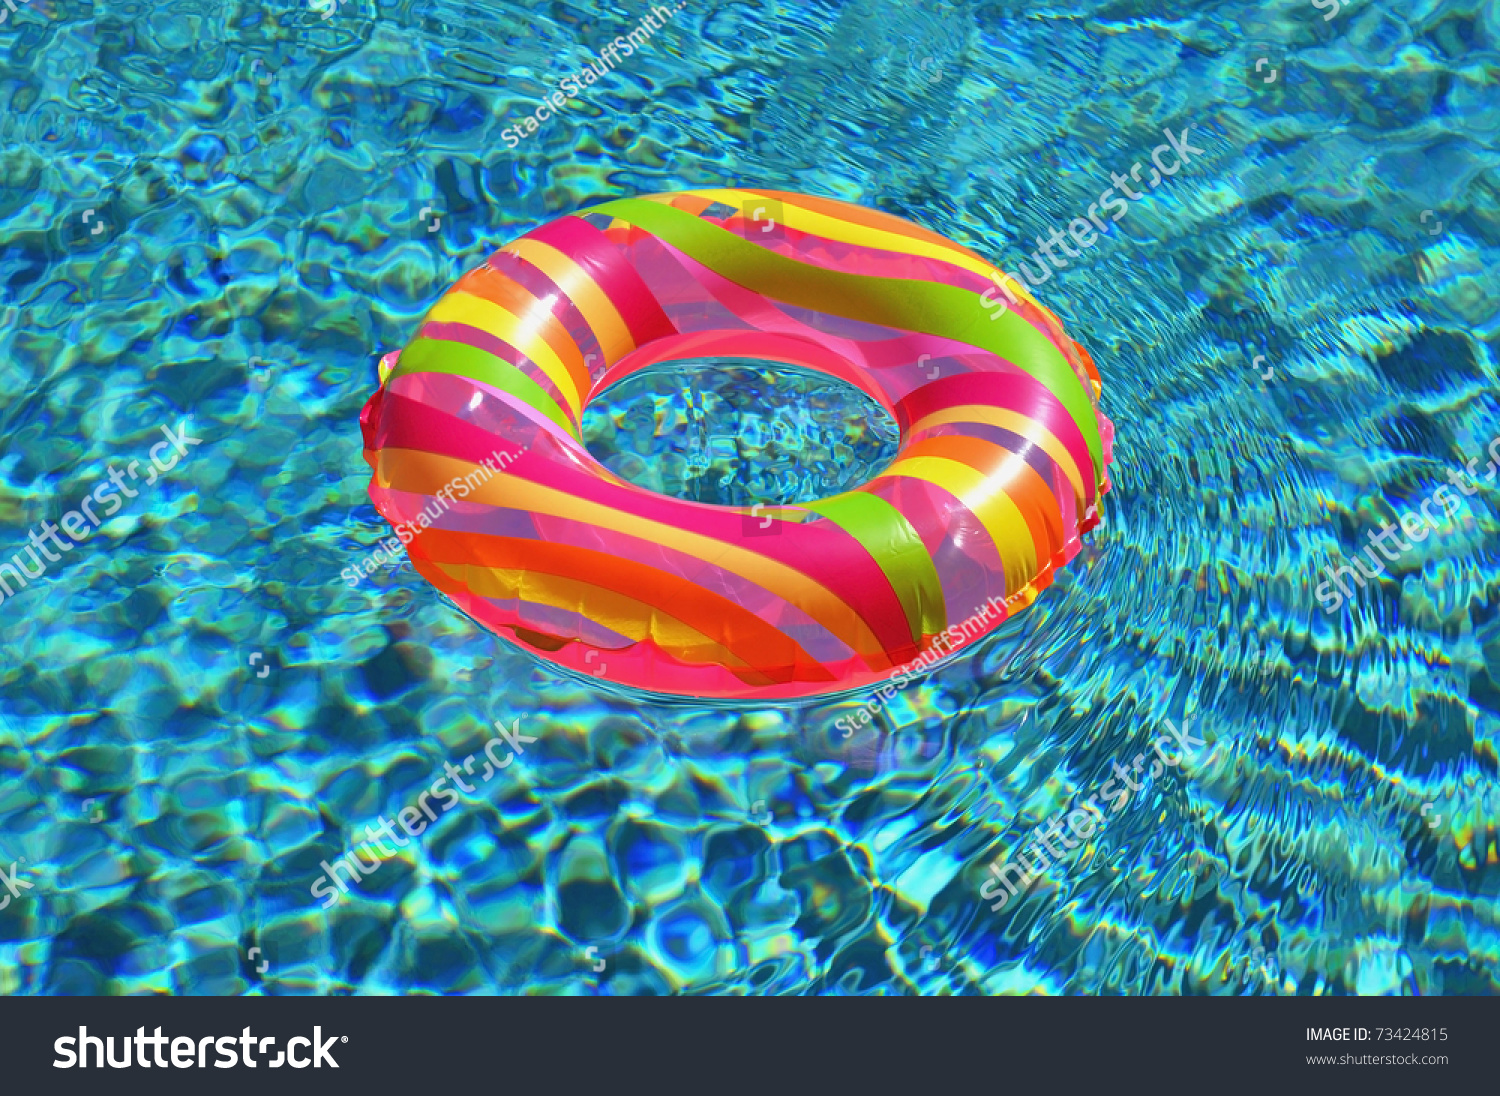 Pool Ring Float In Swimming Pool Stock Photo 73424815 Shutterstock